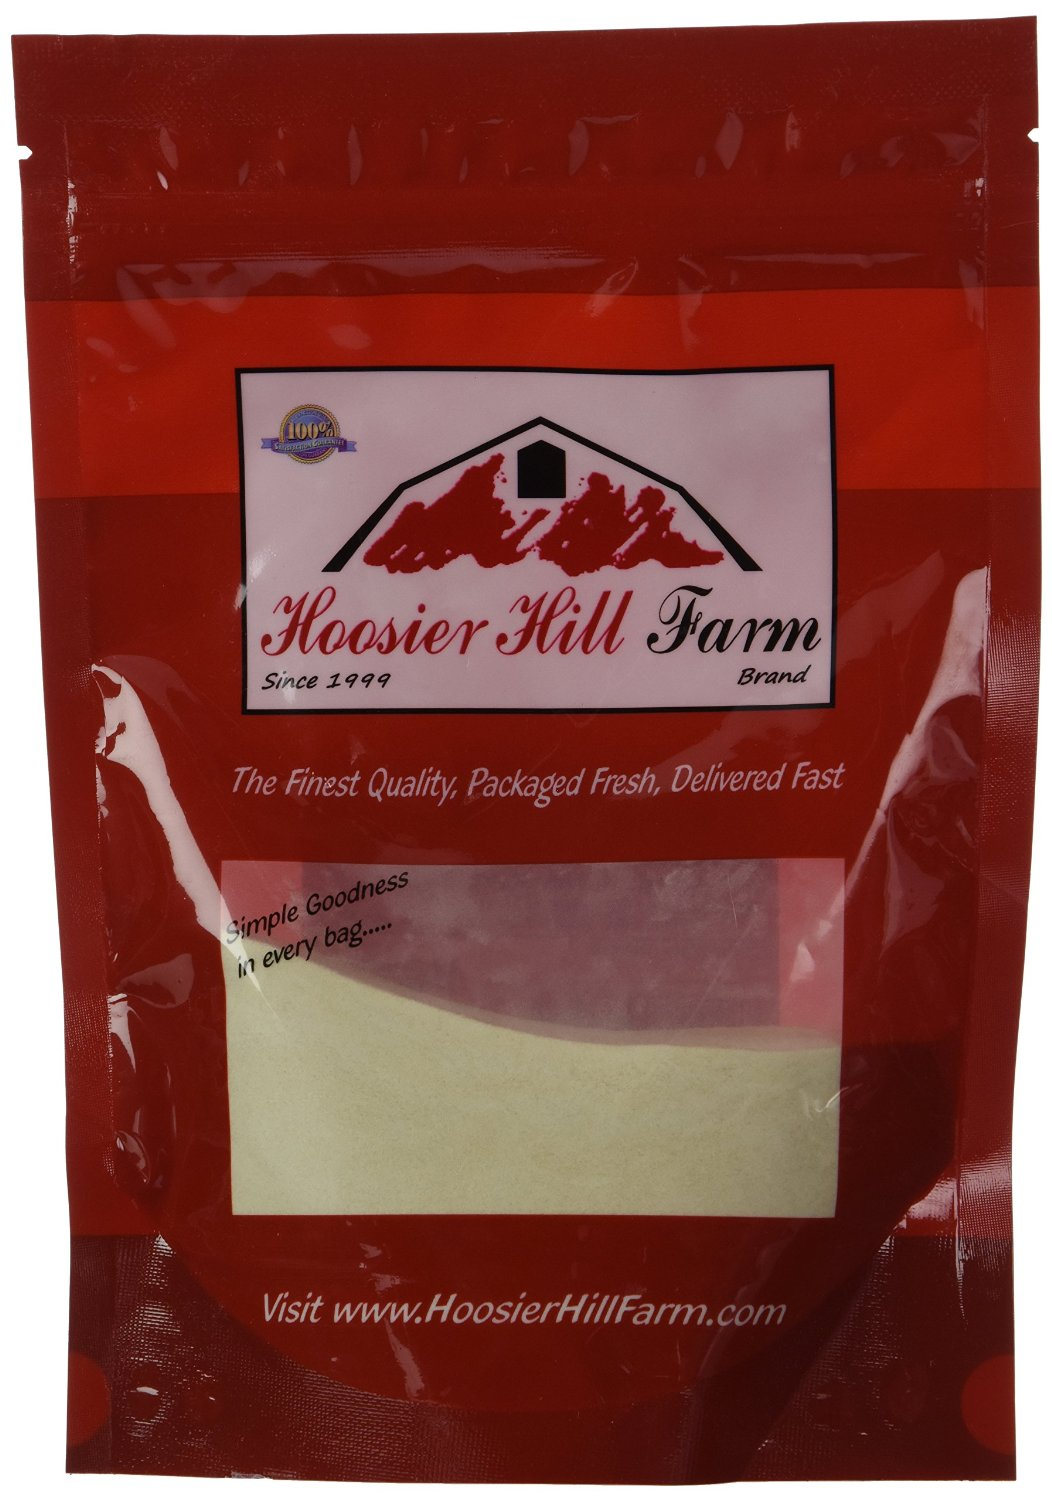 Hoosier Hill Farm Agar Agar powder, 4 Oz.